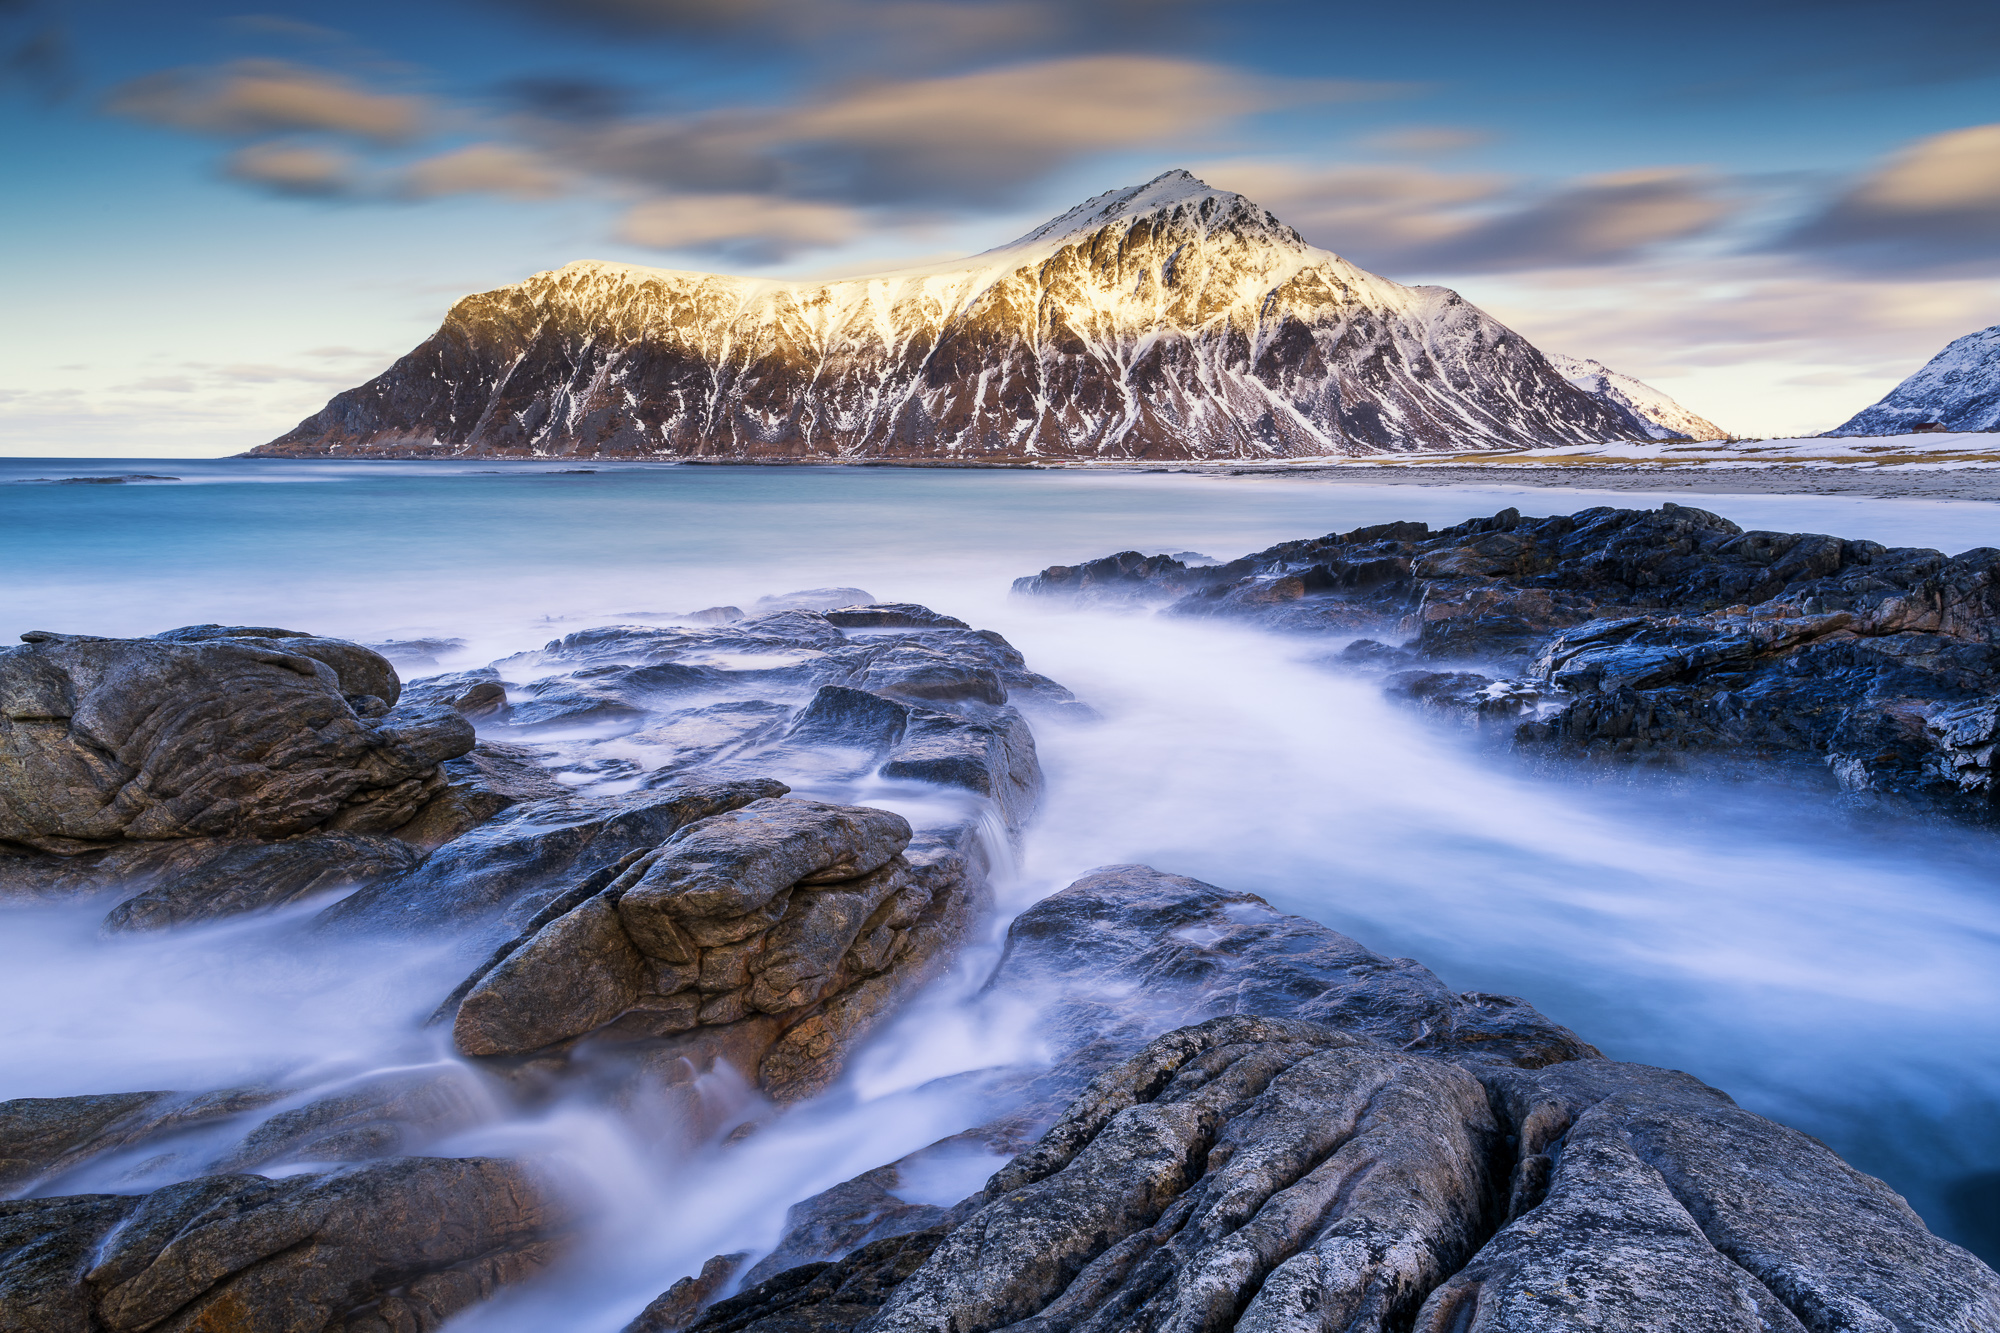 Hustinden from Skagsanden Beach, Lofoten Islands, Norway